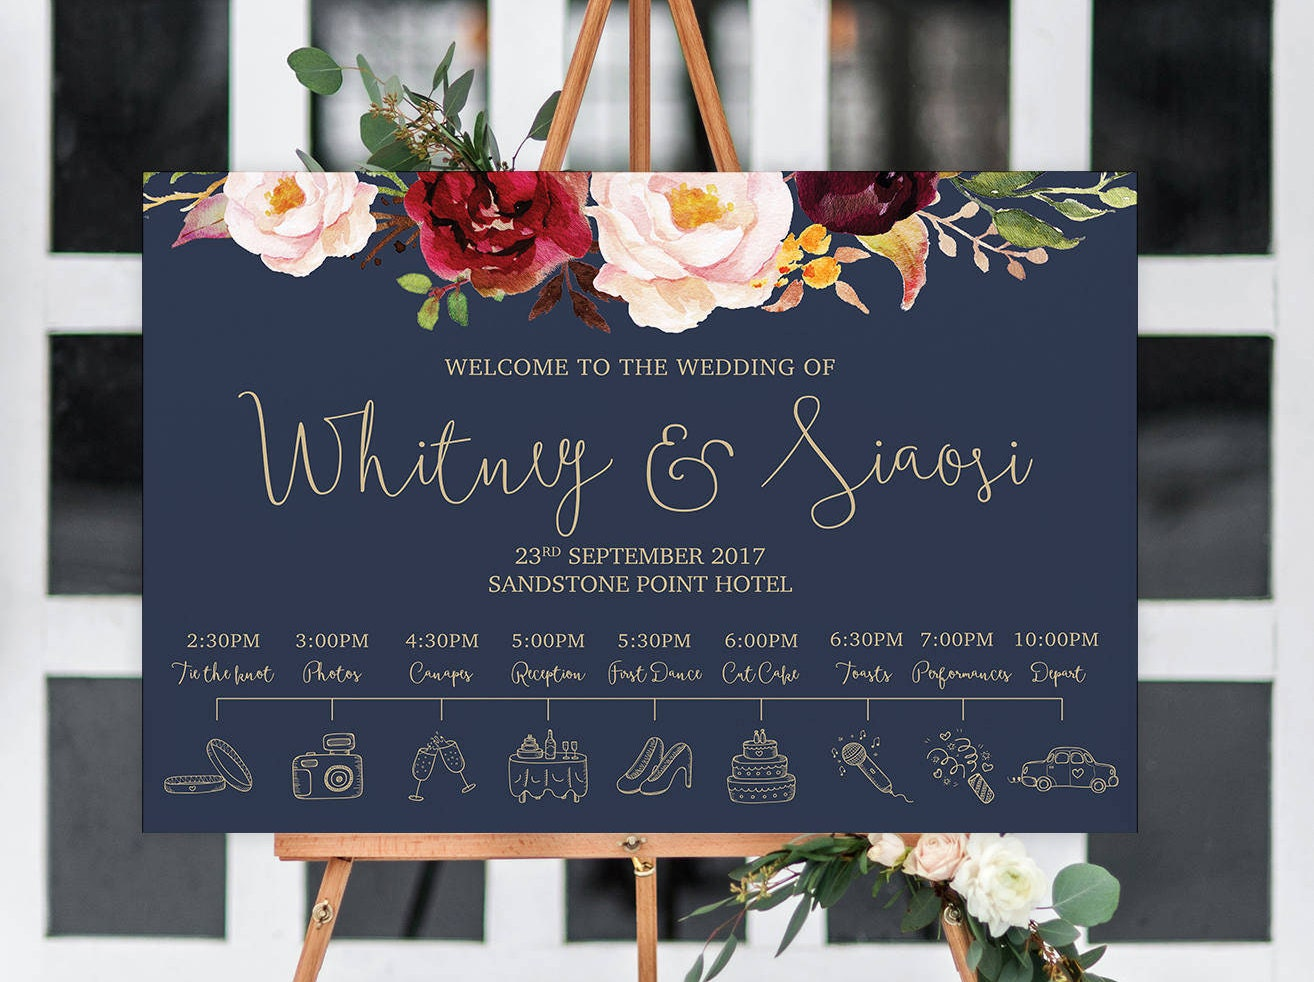 Fantastic Welcome Speech For Wedding Reception Motif Blue Wedding